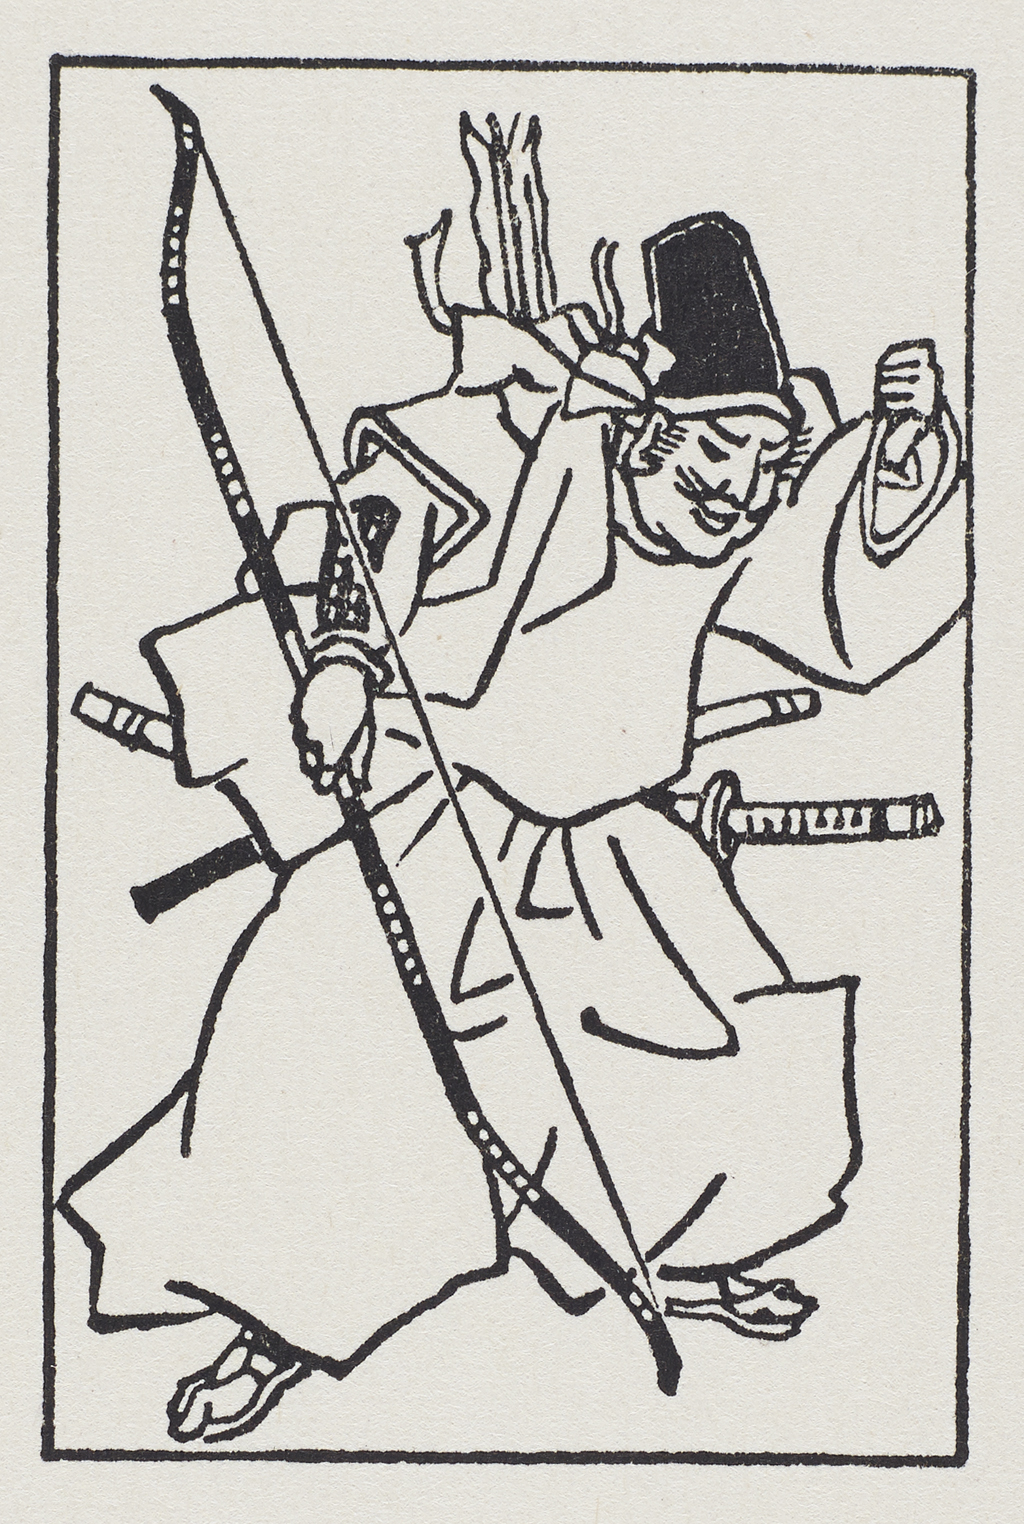 The Travels of Marco Polo (Rochester, New York: The Printing House of Leo Hart, 1933), p. 310. Marginal illustration by W.A. Dwiggins.